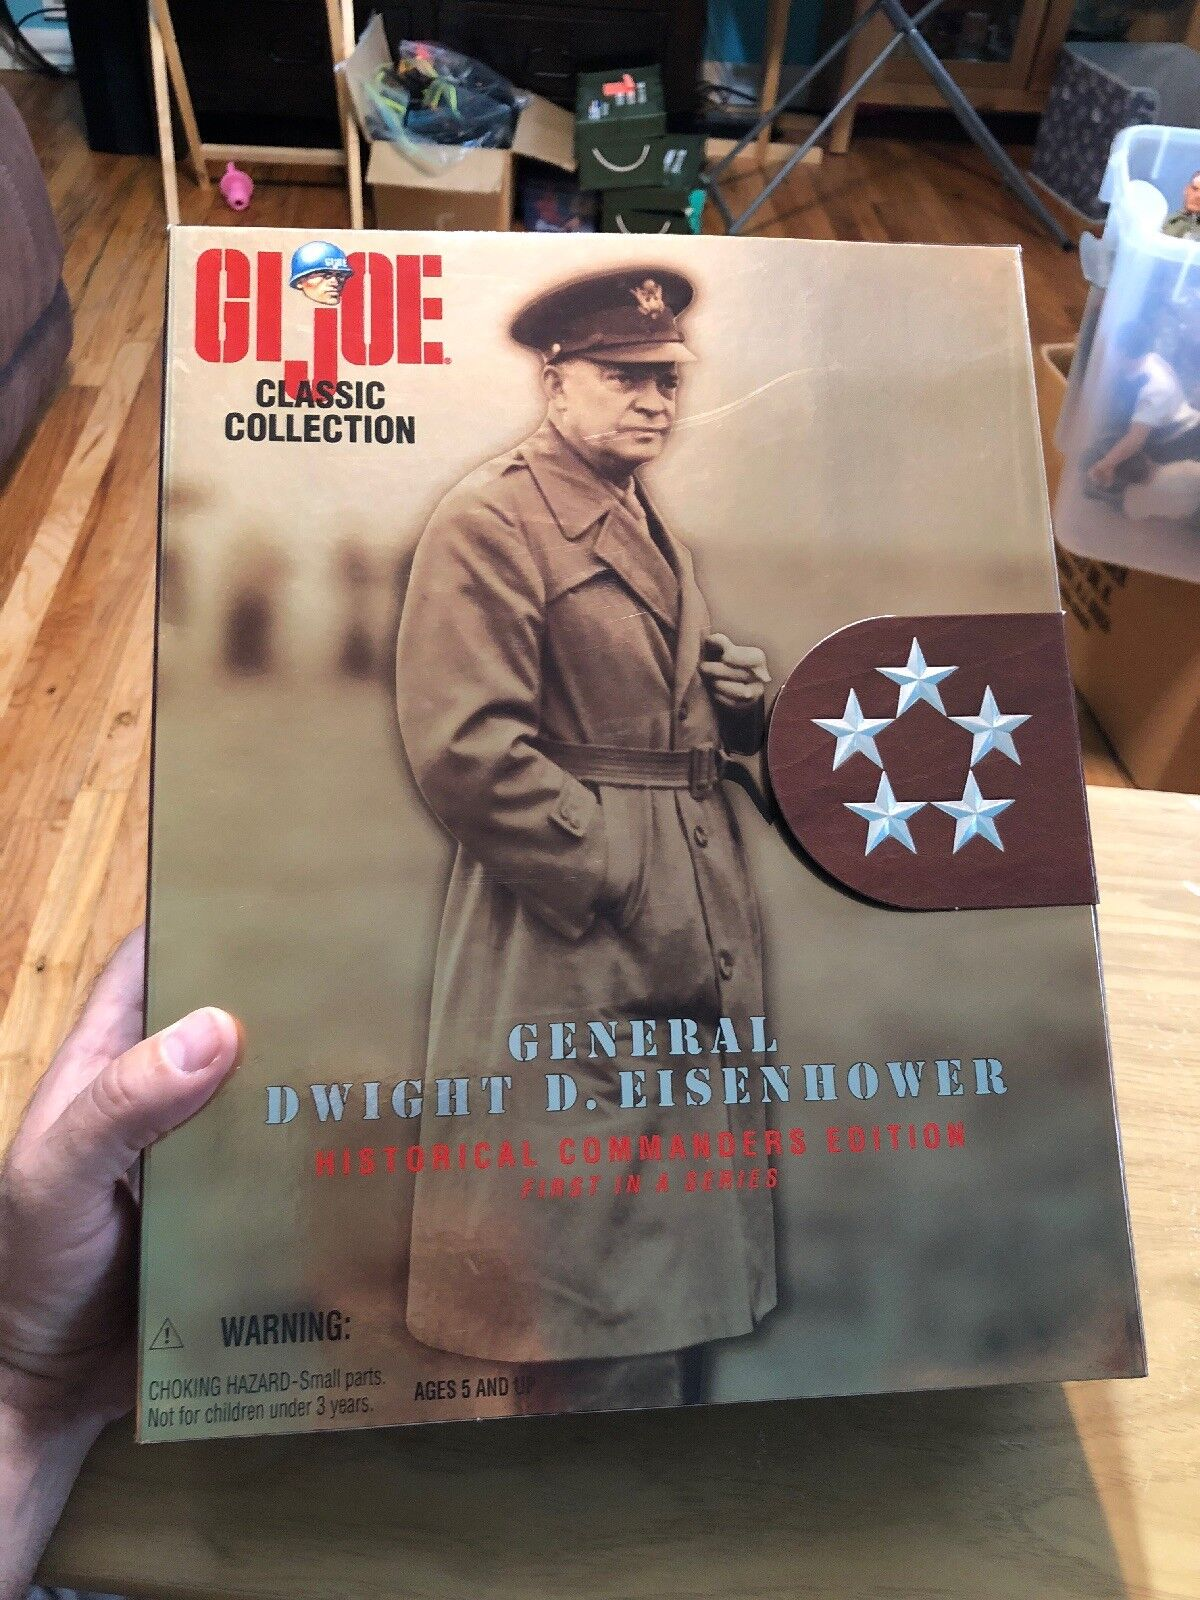 Hasbro General Dwight D. Eisenhower Action Figure Figure Figure 3b13cf